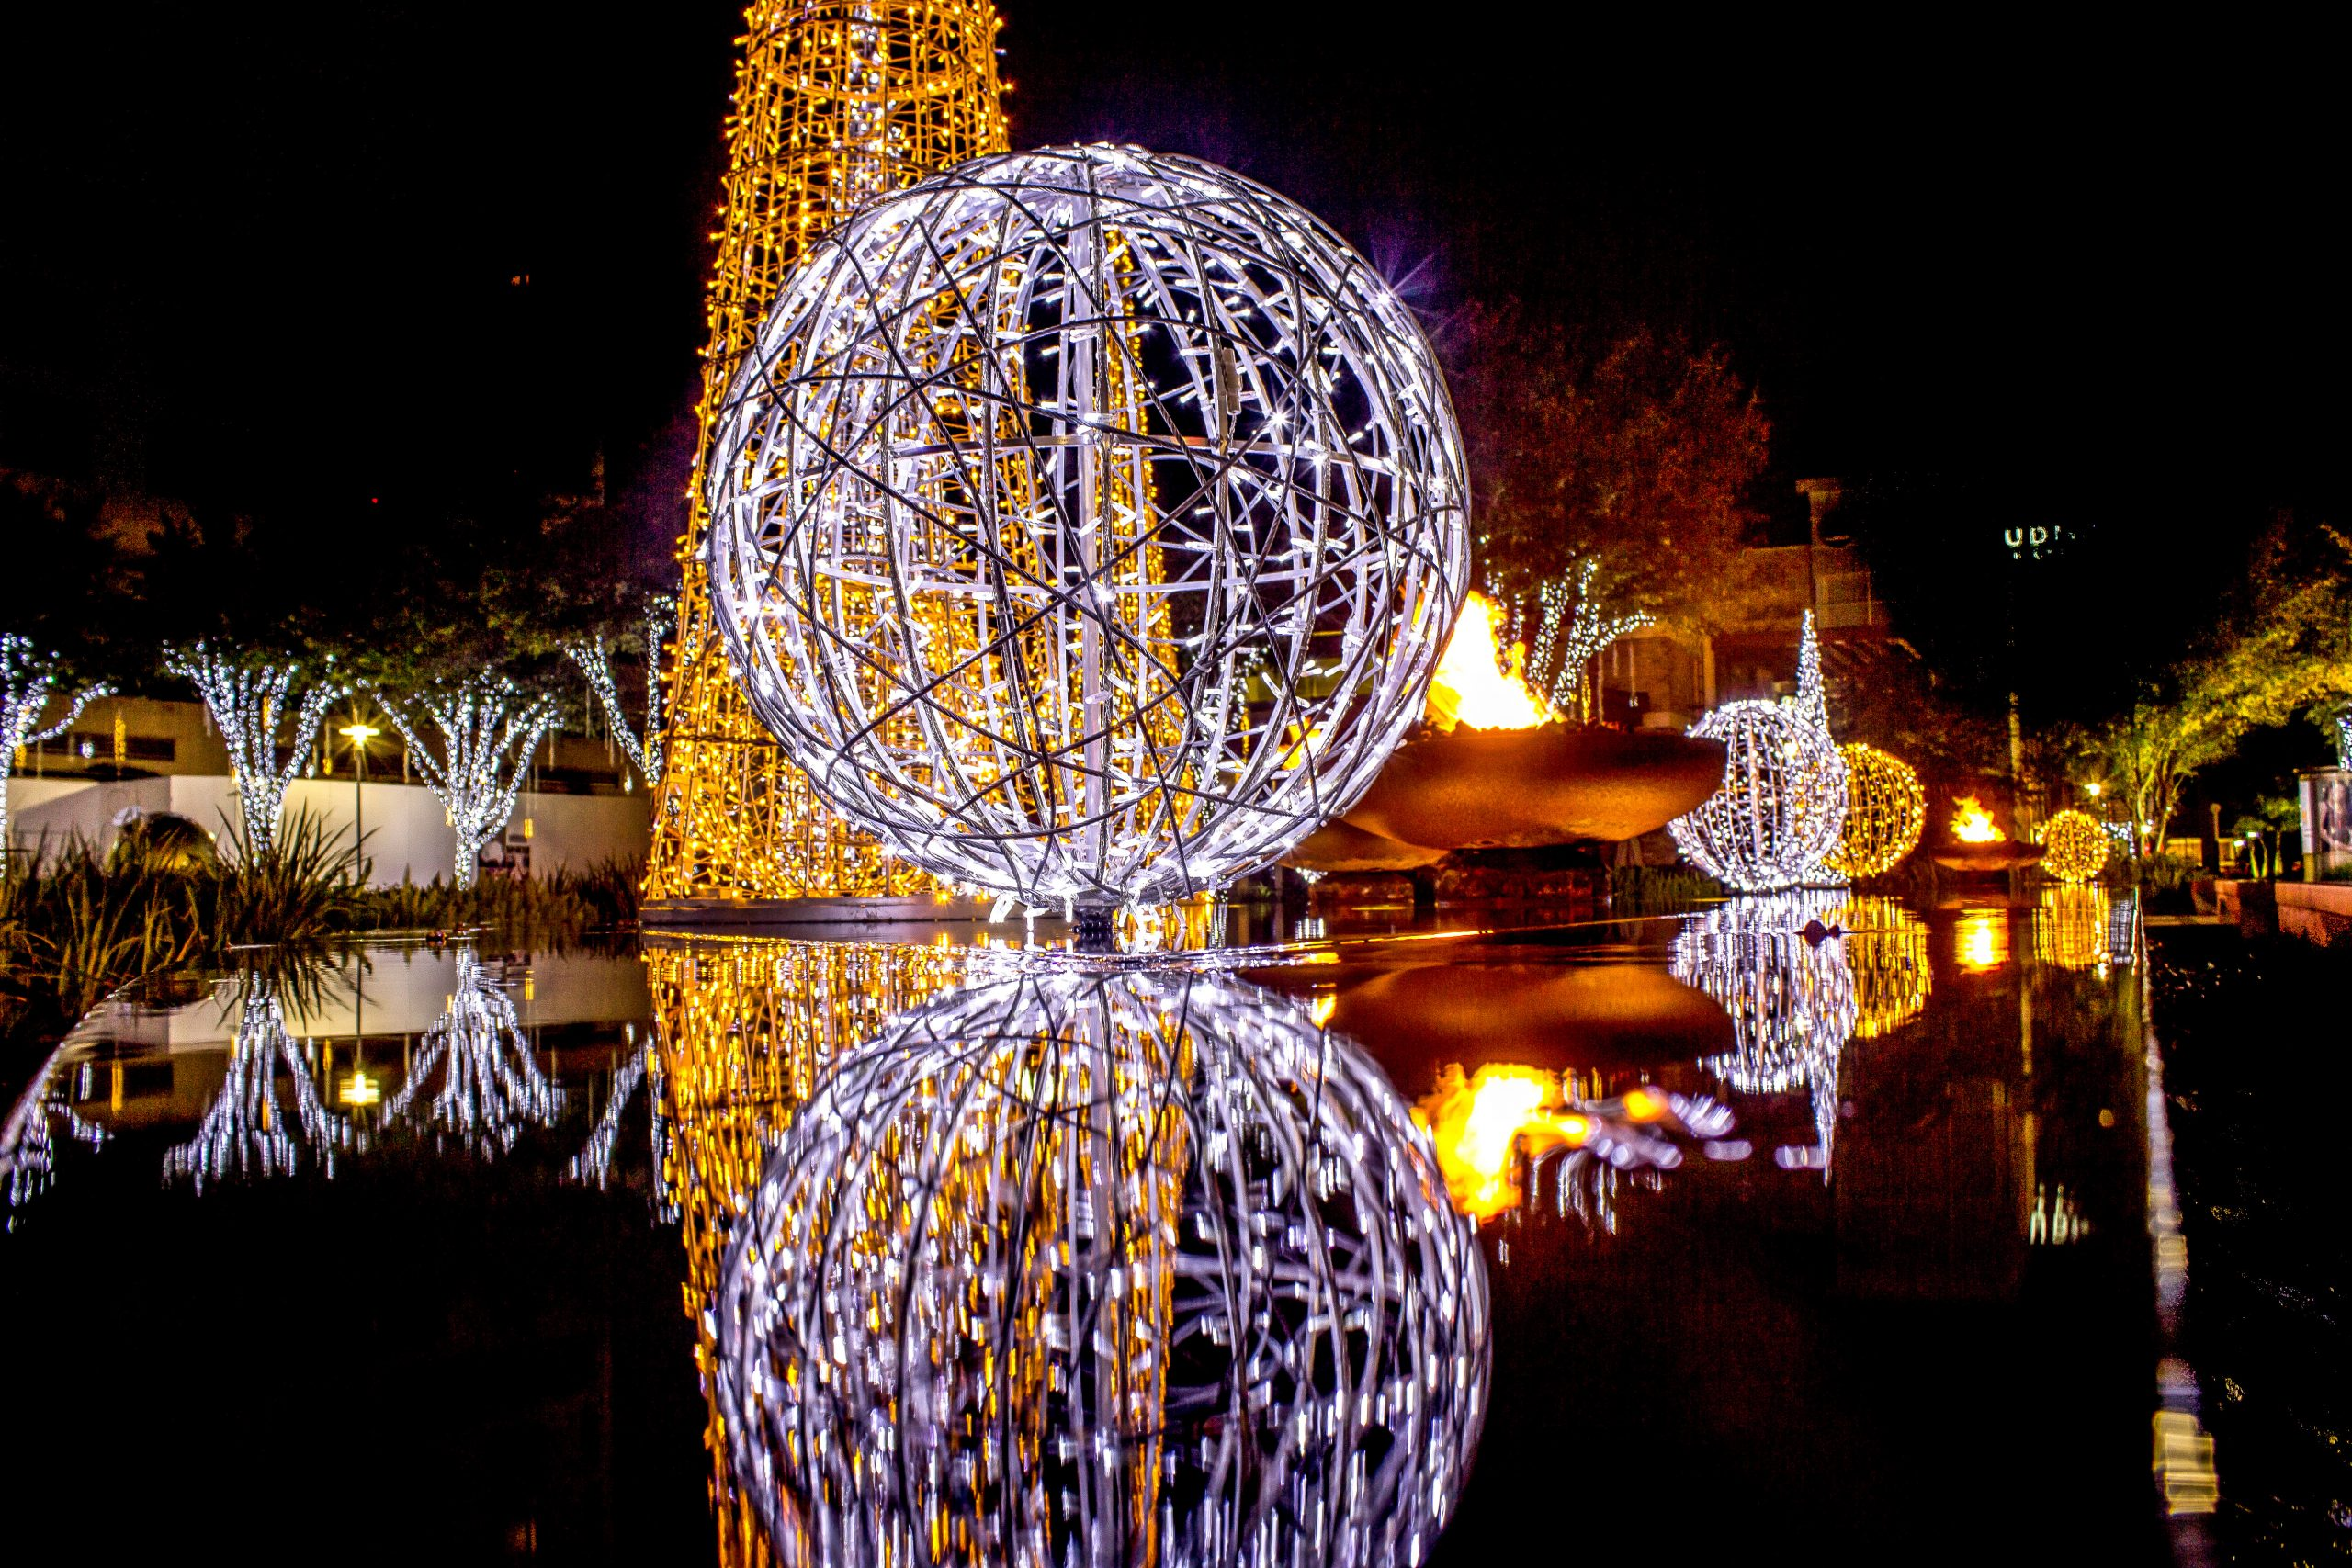 Christmas light display with a giant orb--you'll find impressive displays like this all over the best places to celebrate Christmas in Texas